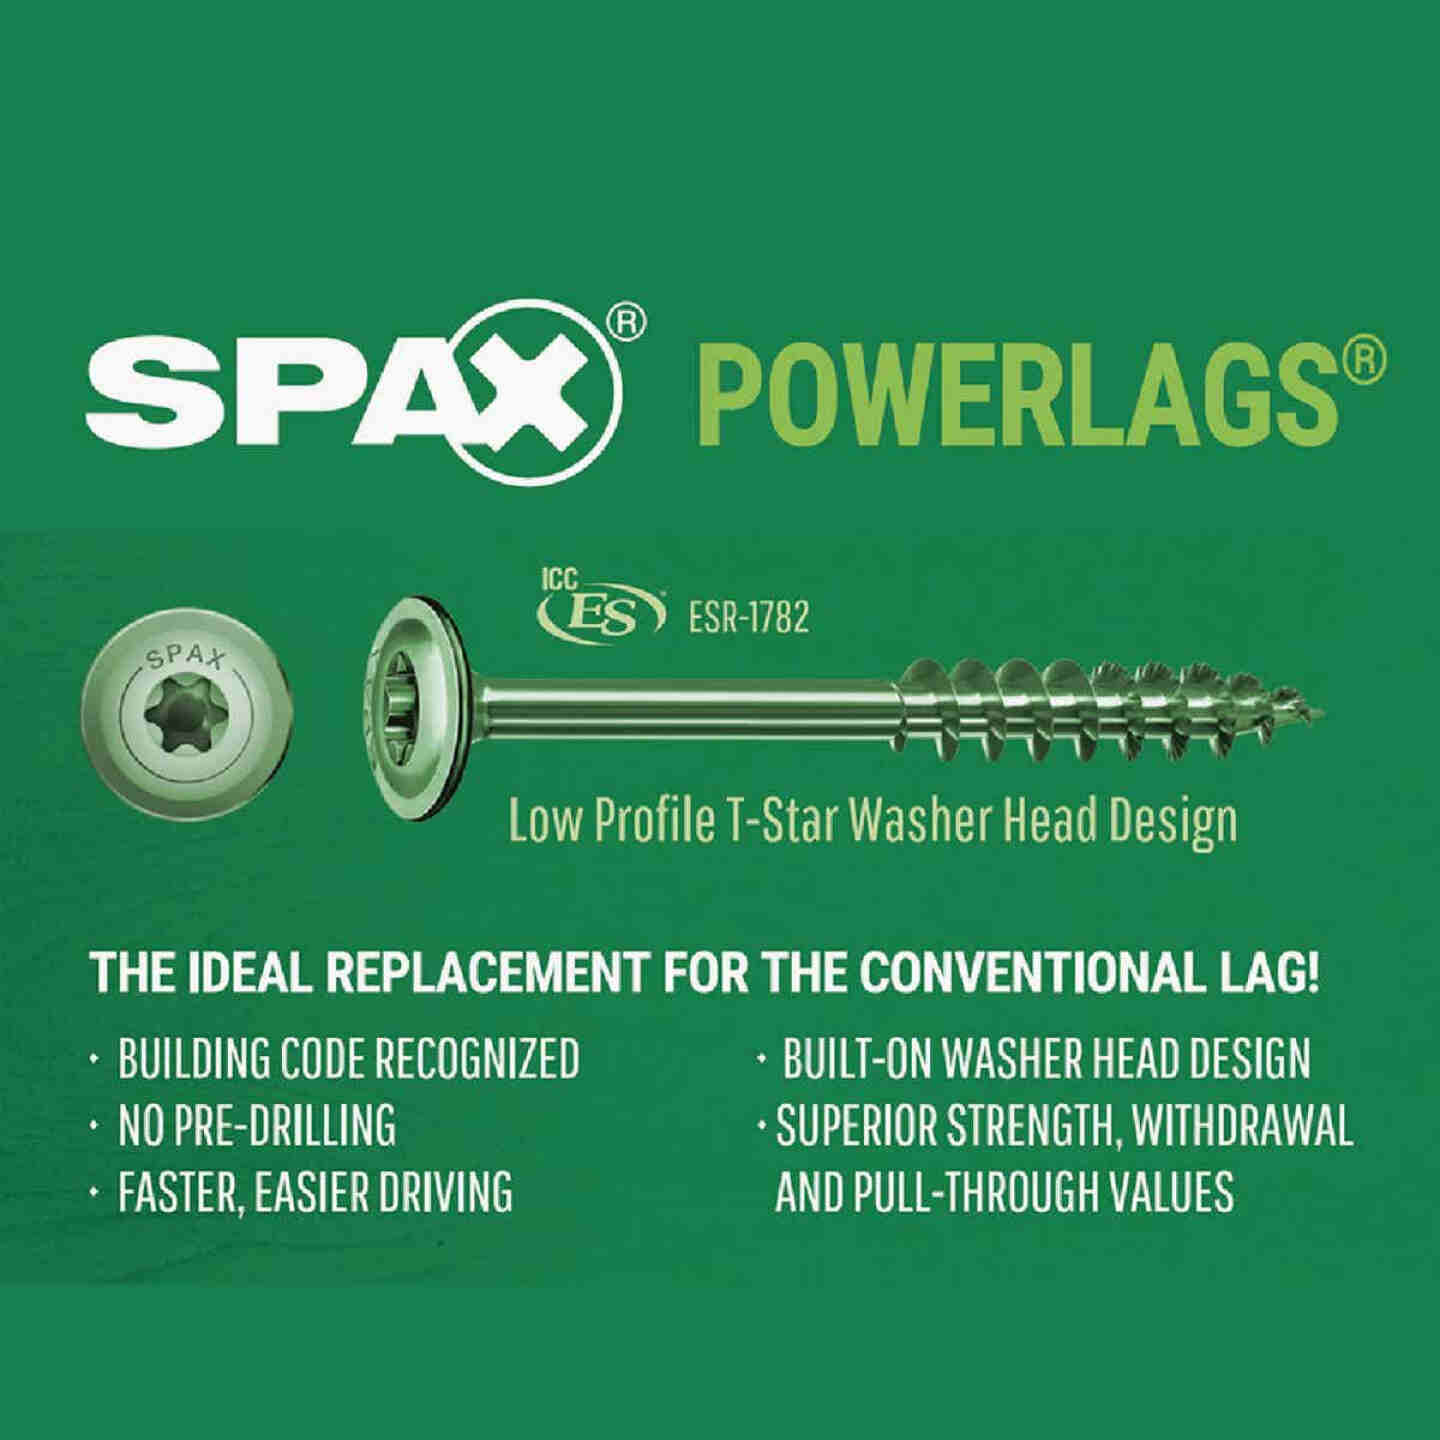 Spax PowerLags 1/4 In. x 3 In. Washer Head Exterior Structure Screw (12 Ct.) Image 4